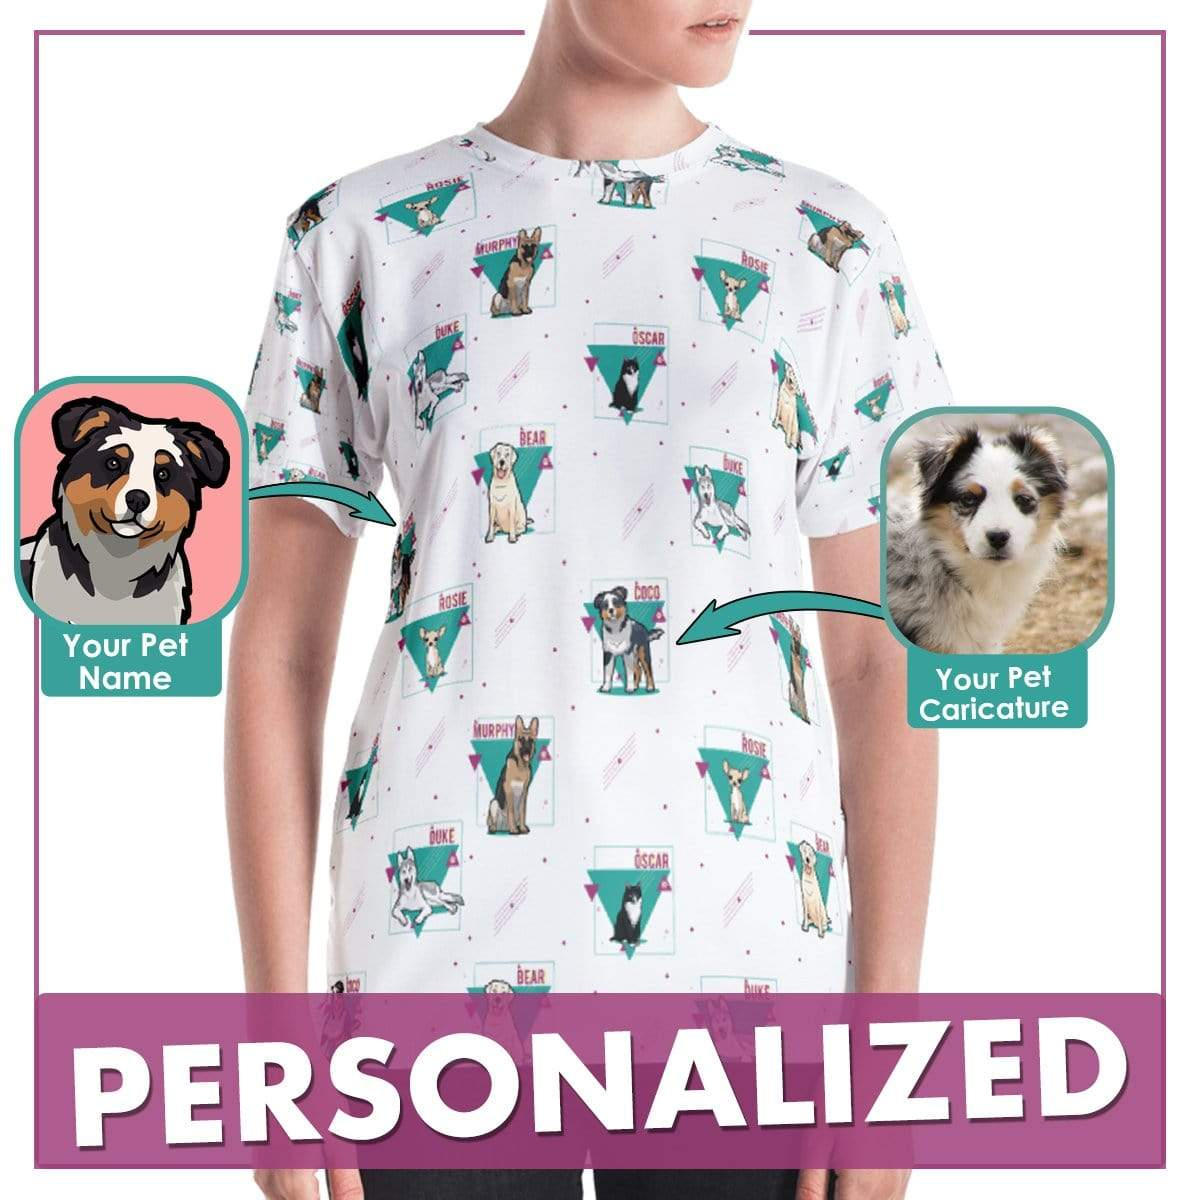 Personalized Dog Mom Gifts By Pupnpaws All Over Print T-shirt Women / Purple / XS Personalized Dog-Themed Abstract T-Shirts